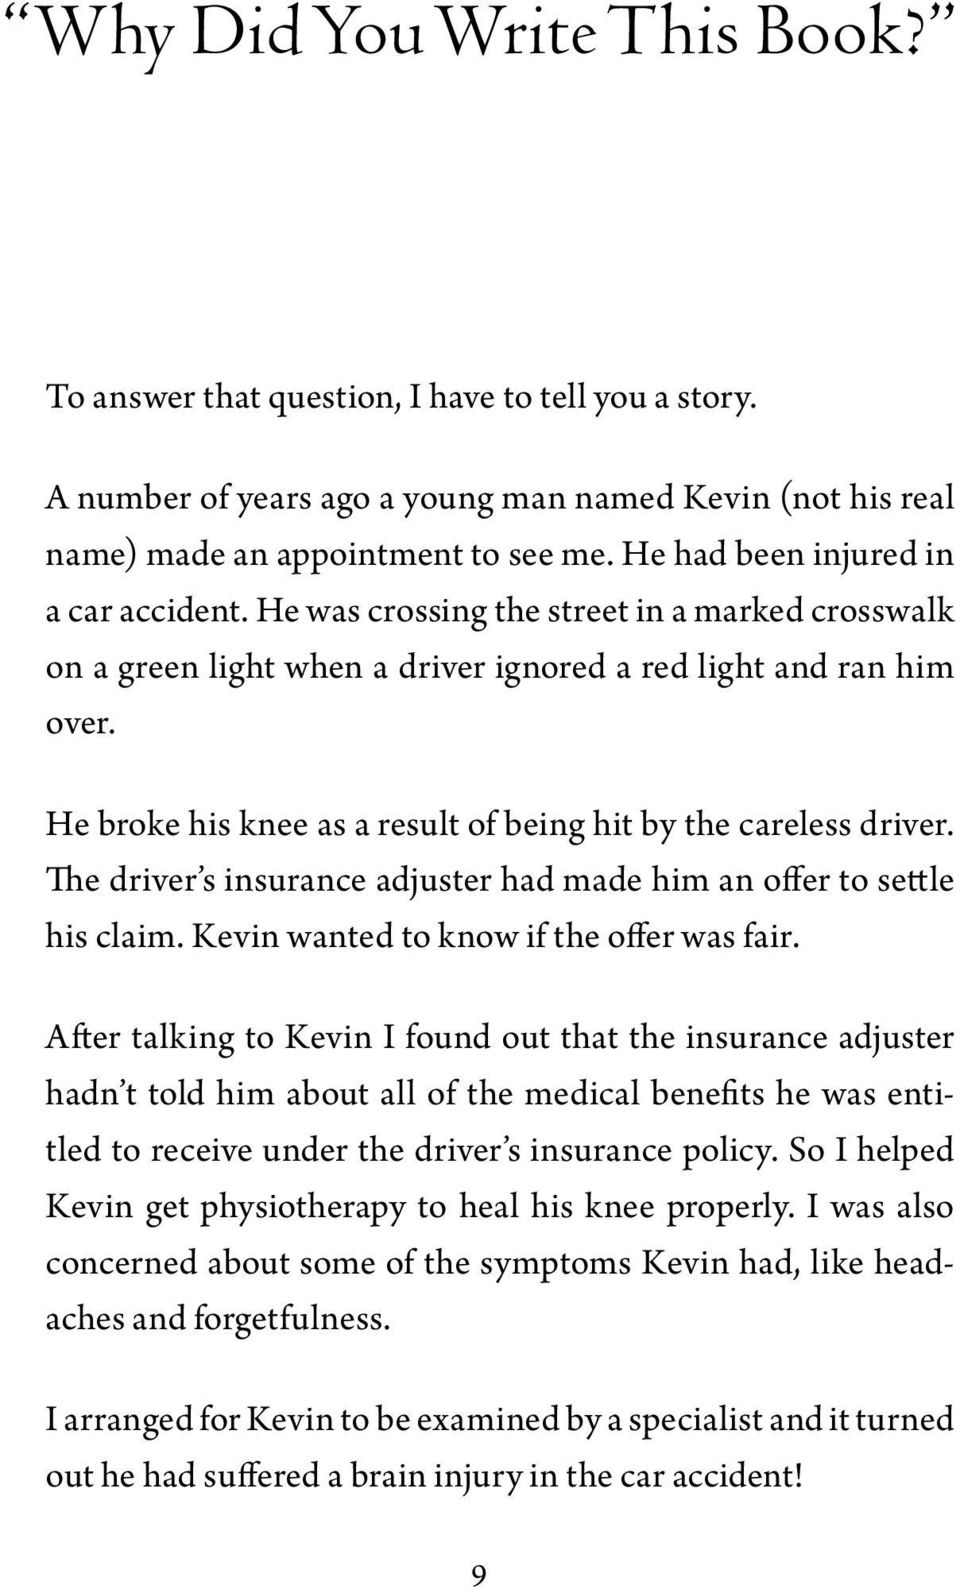 He broke his knee as a result of being hit by the careless driver. The driver s insurance adjuster had made him an offer to settle his claim. Kevin wanted to know if the offer was fair.